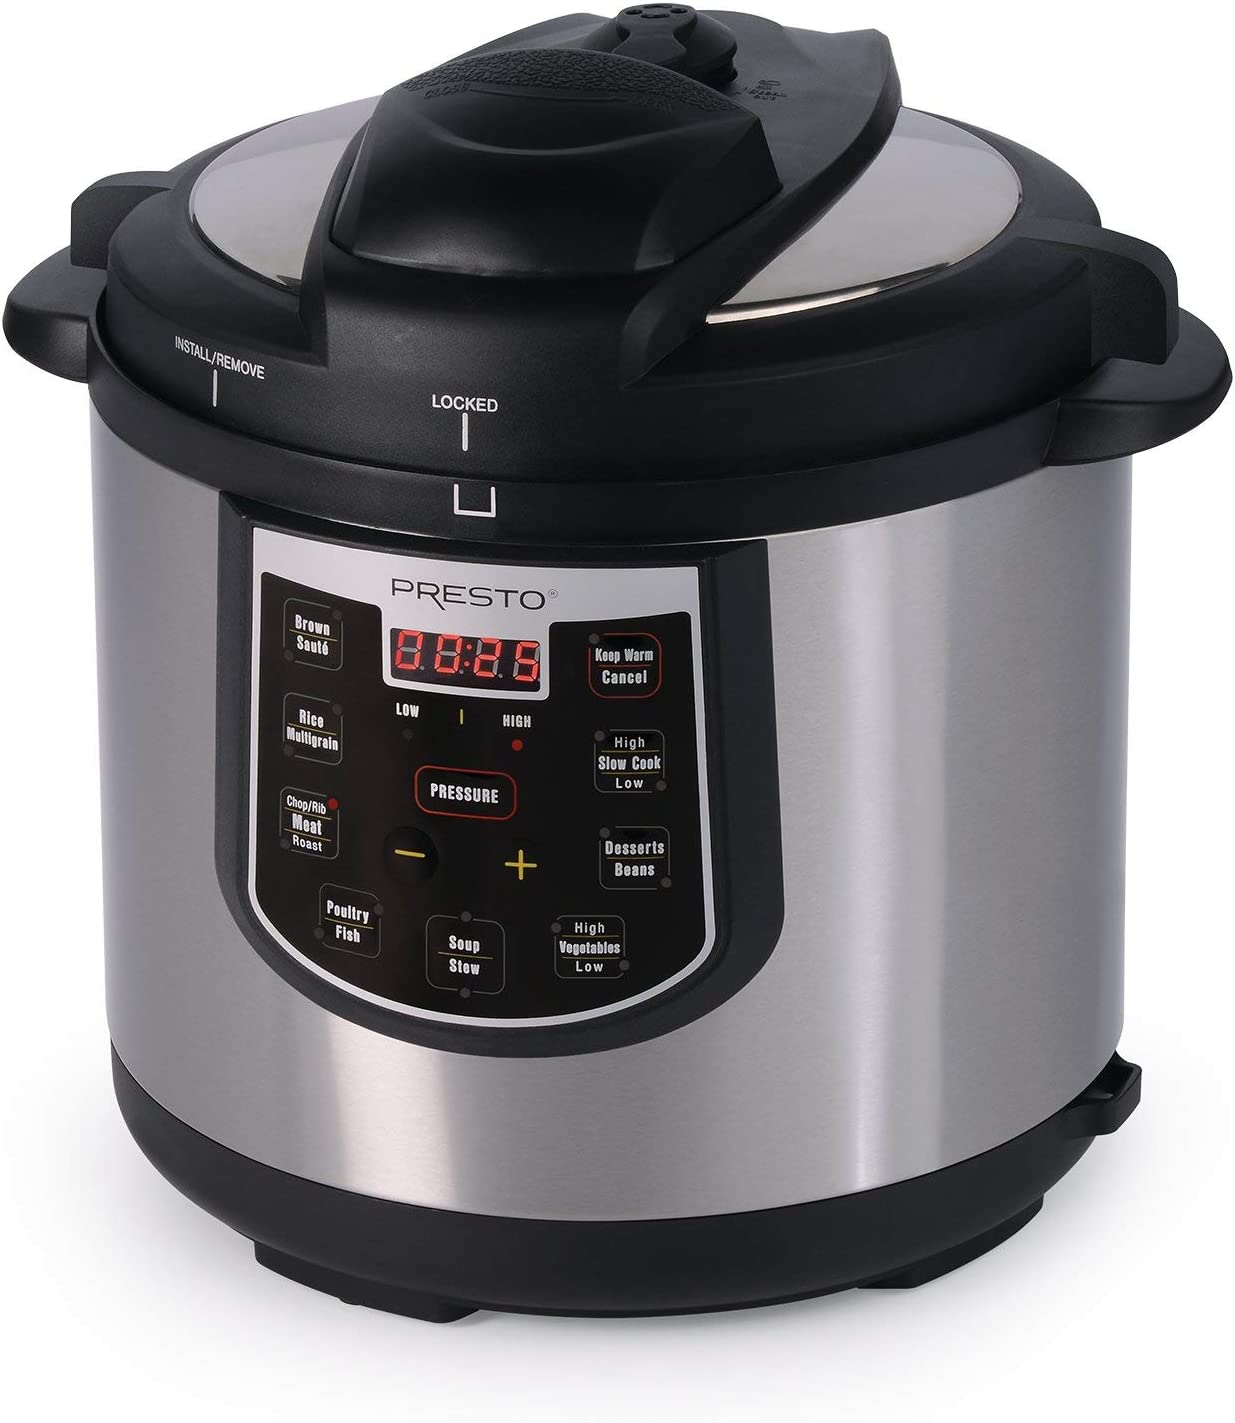 Presto 02141 6-Quart Electric Pressure Cooker, Stainless, Black, Silver (Renewed)